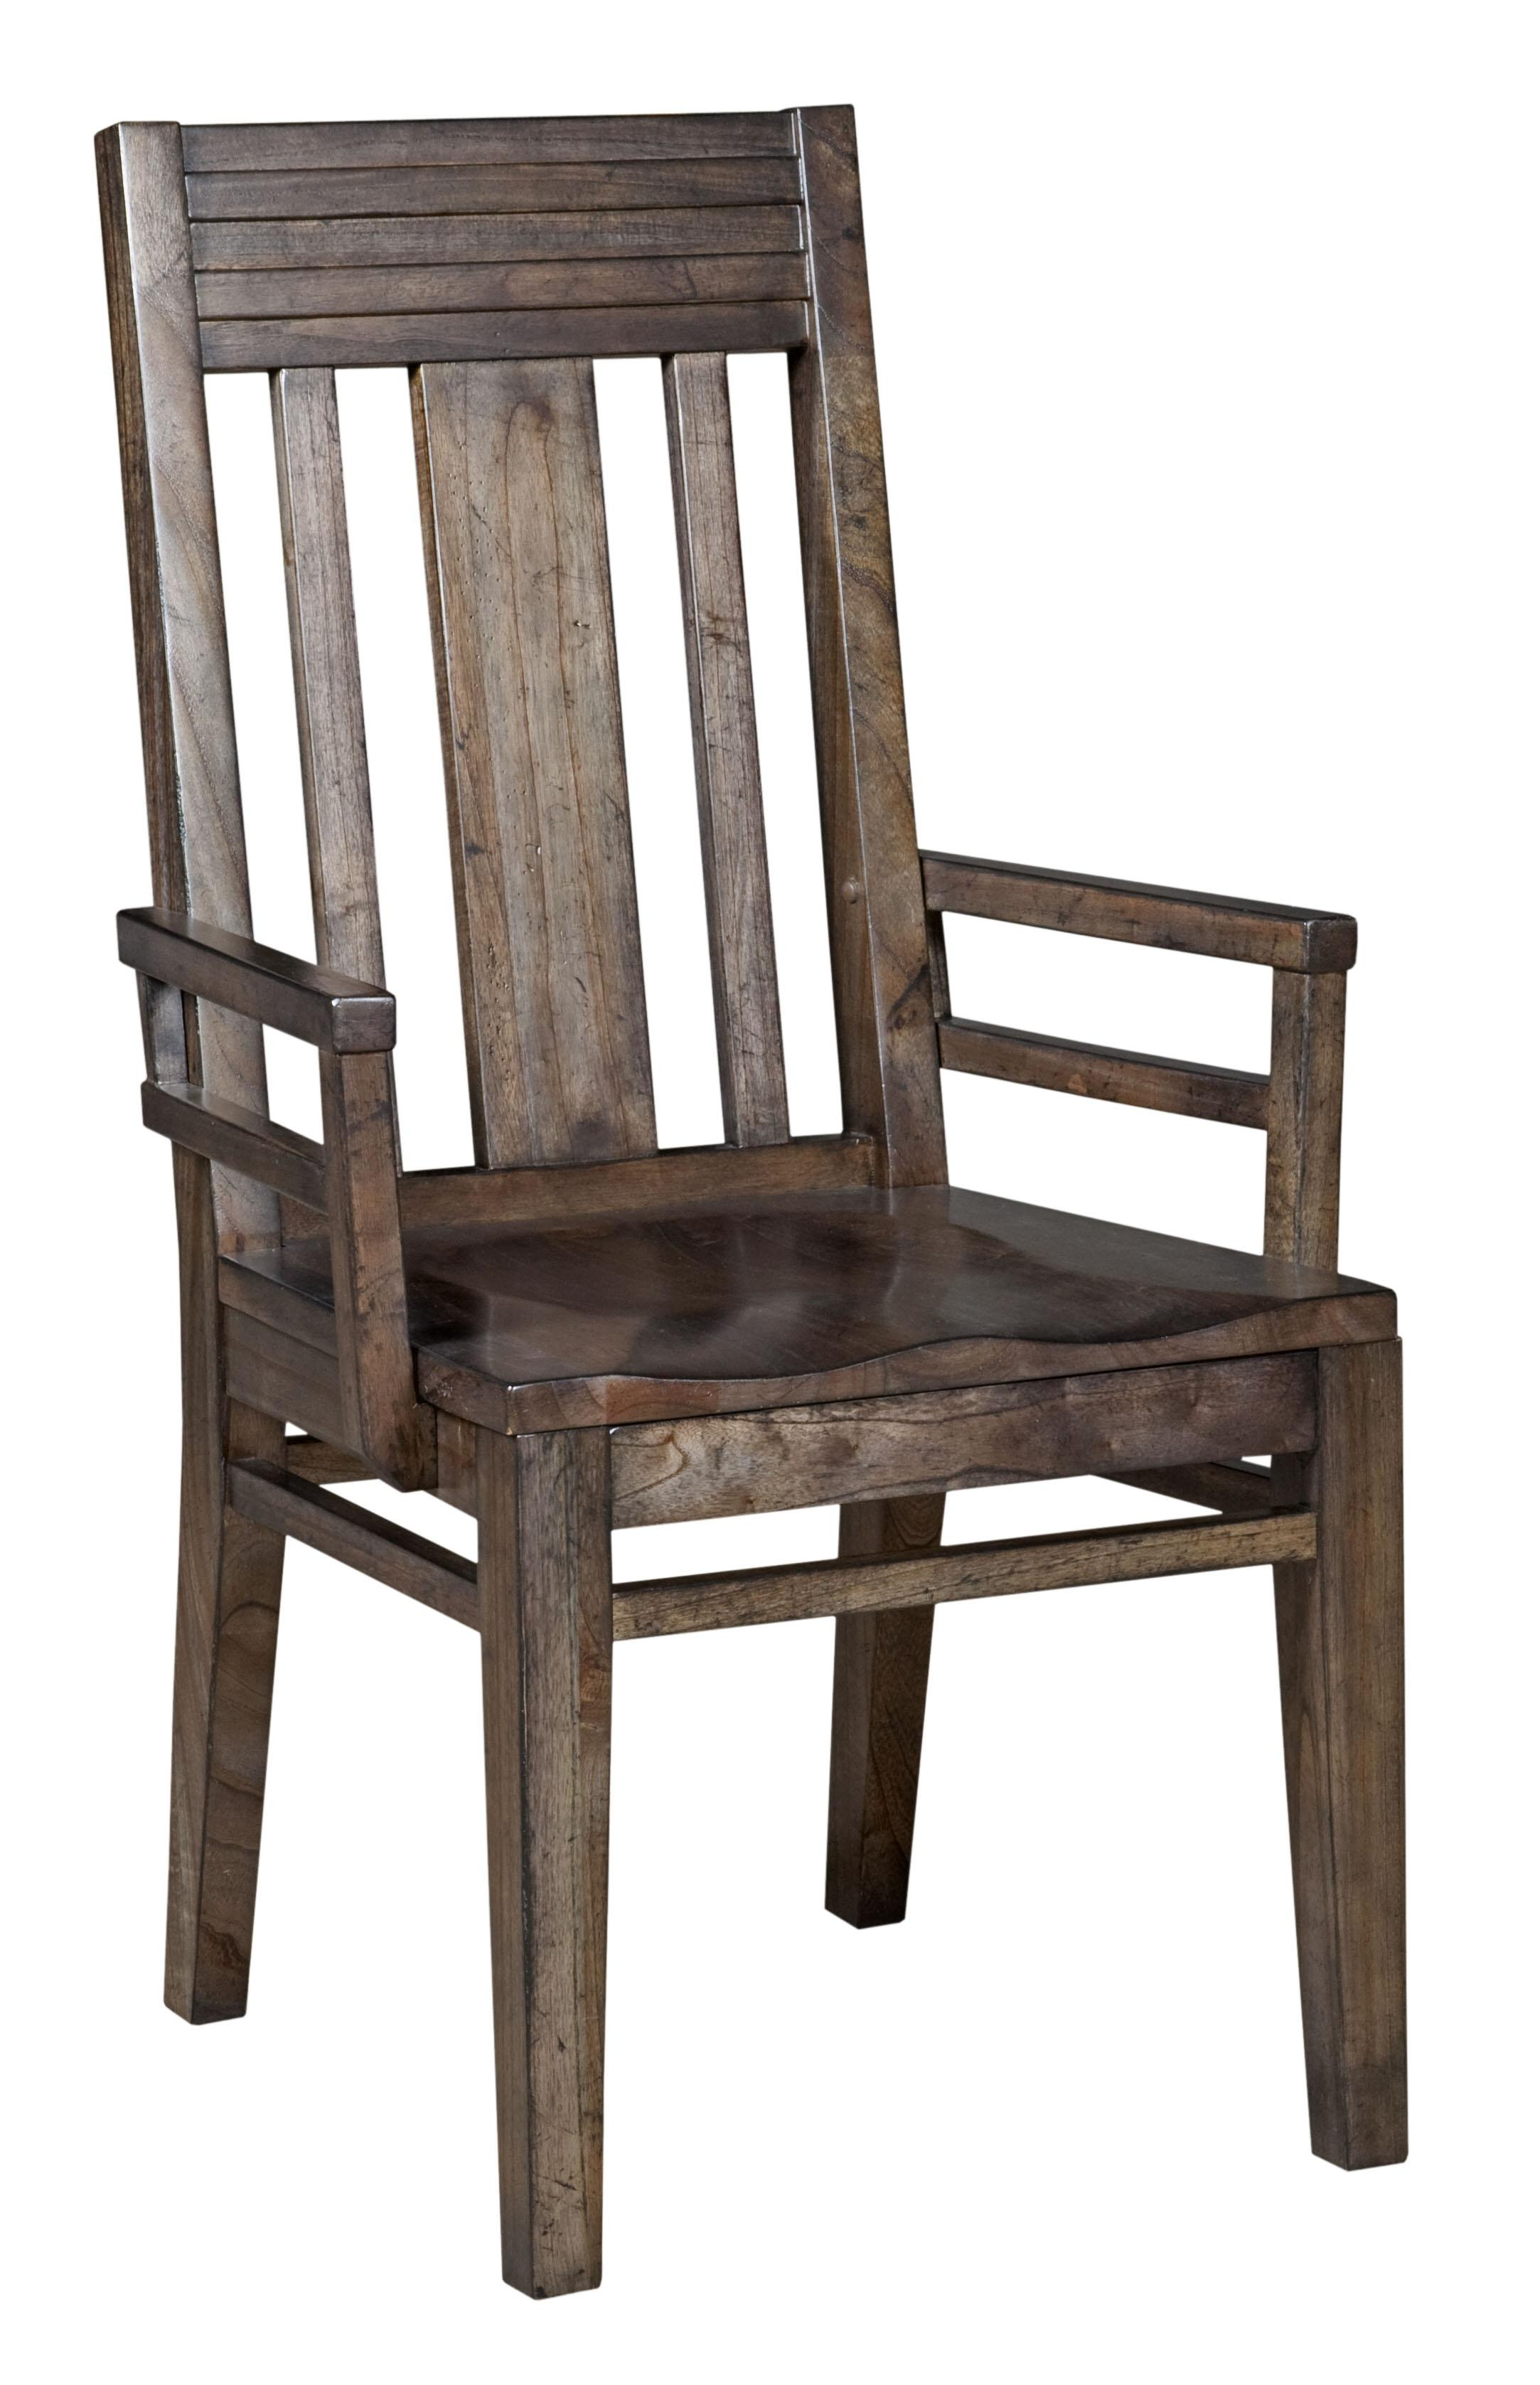 Kincaid Furniture Montreat Saluda Arm Chair - Item Number: 84-062